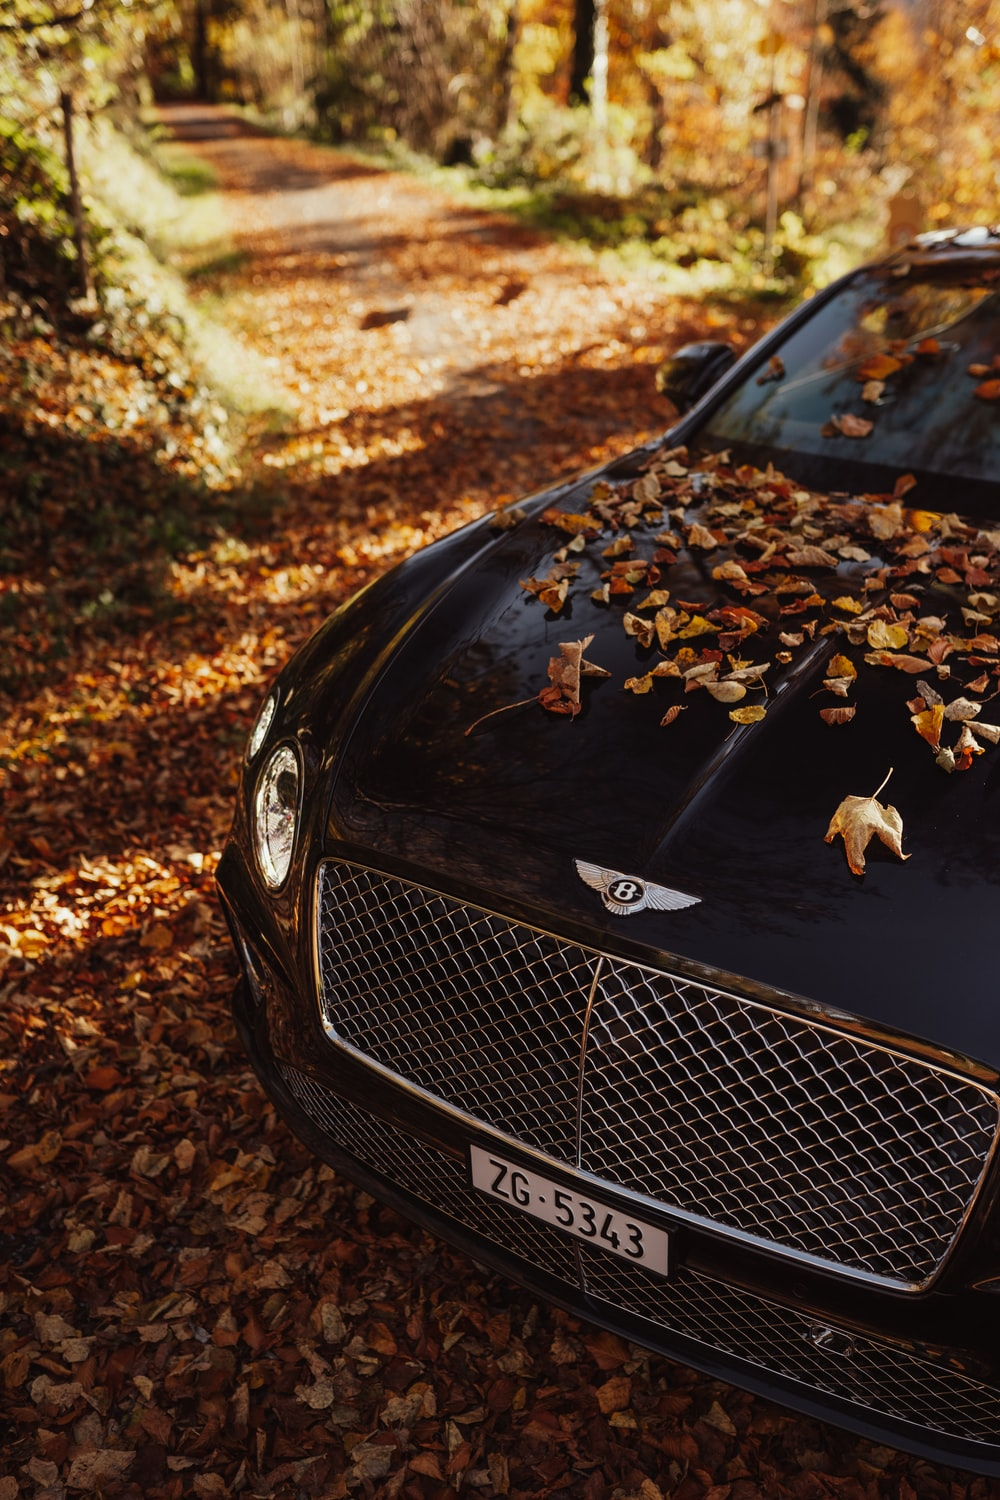 black bmw car with dried leaves on ground